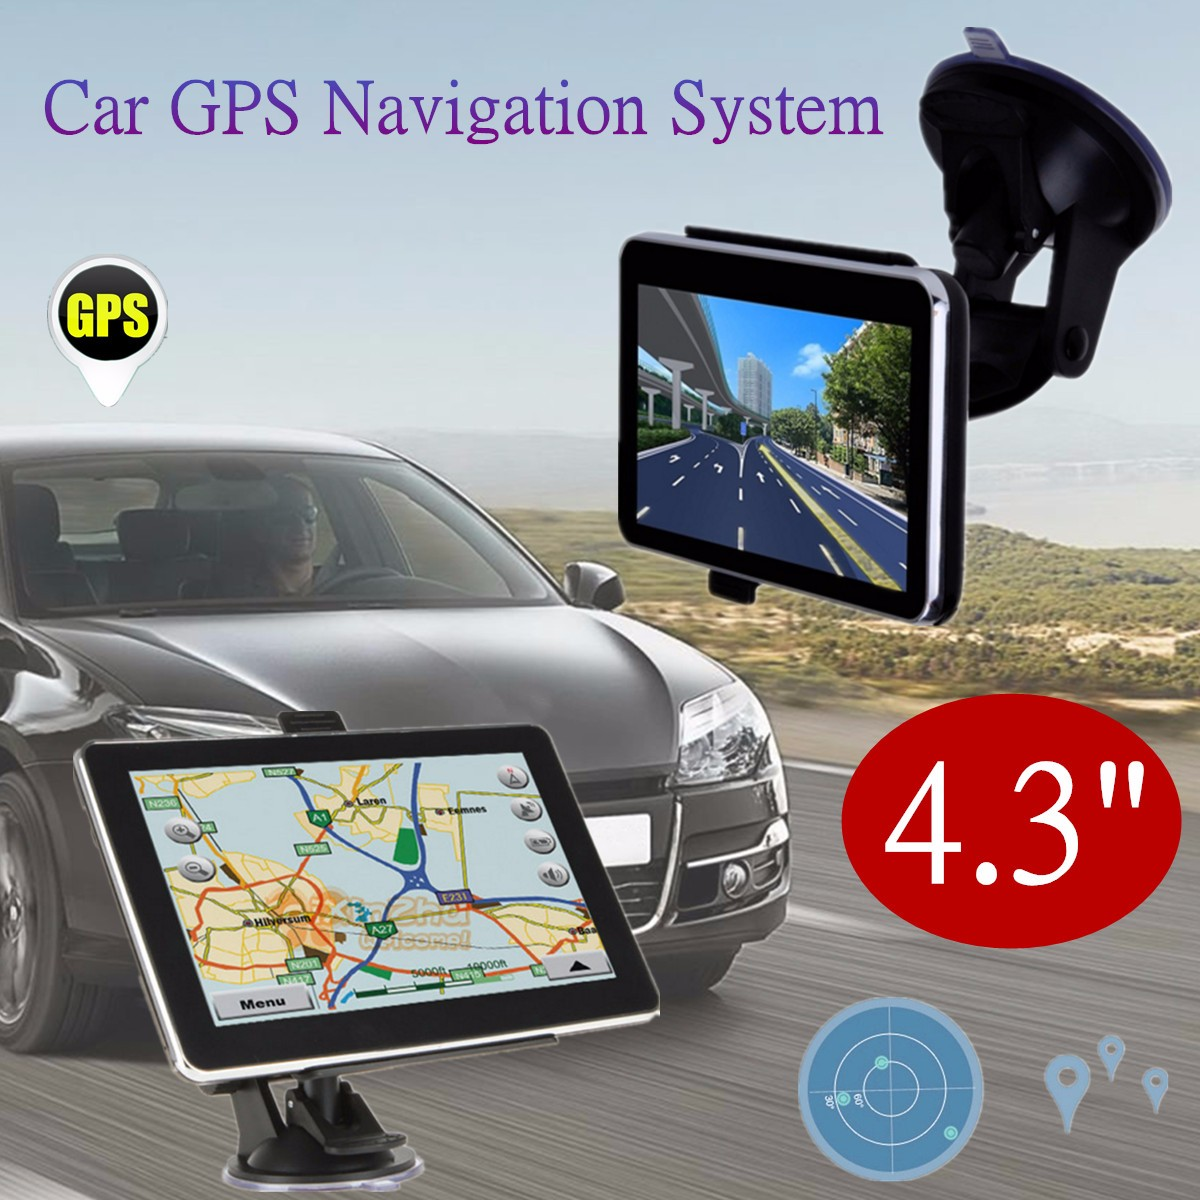 4.3 inch Car GPS Navigation 8GB MP3/MP4 Player Automobile Navigator FM Radio Europe & UK Free Map Vehicle gps Truck Map Sat Nav 5 inch hd car gps navigation 800m fm 8gb ddr128m map free upgrade car gps navigator navitel europe sat nav truck gps automobile